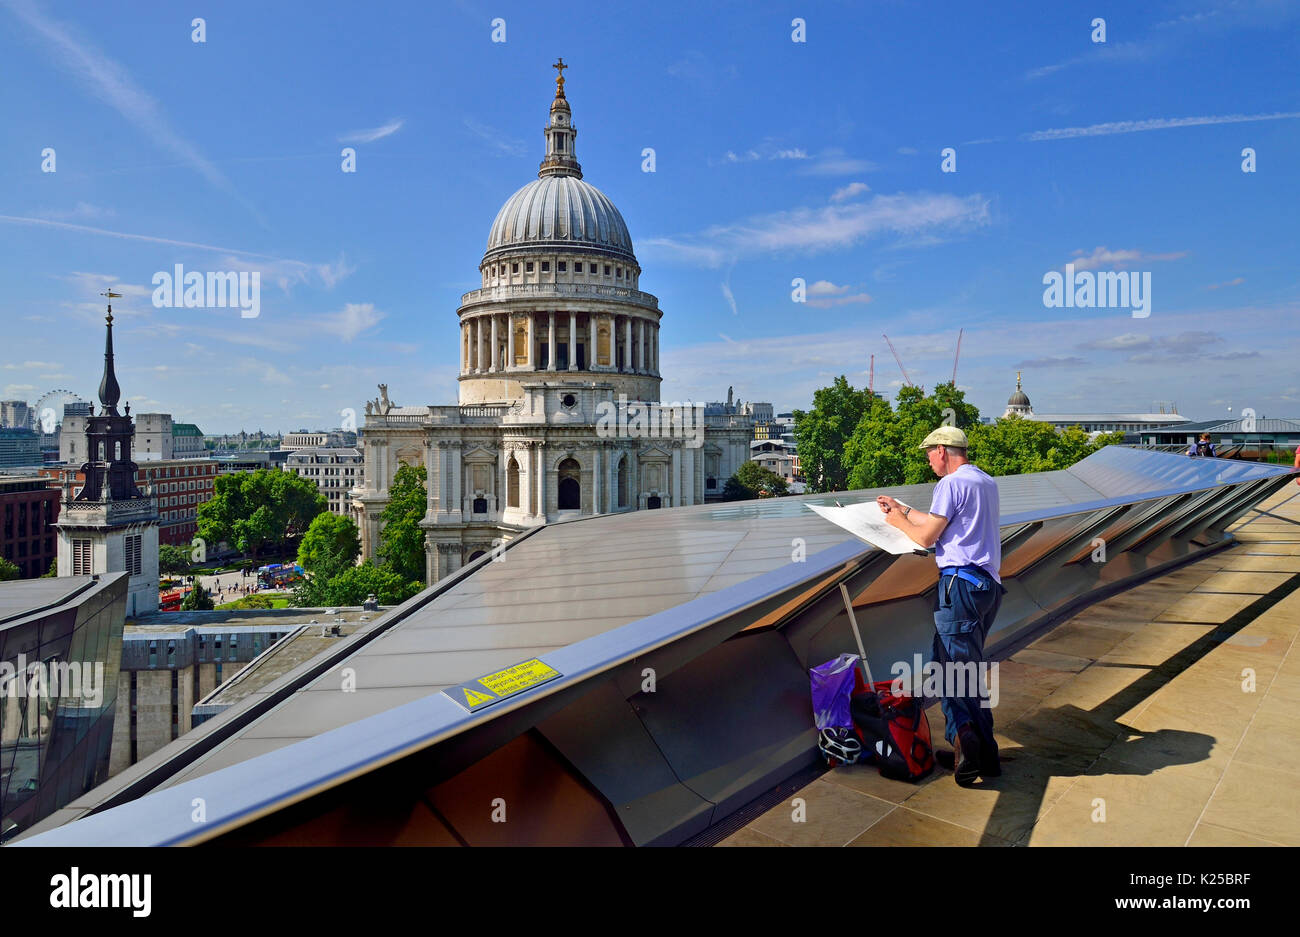 London, England, UK. St Paul's Cathedral seen from the public rooftop terrace of One New Change - artist drawing the cathedral - Stock Image